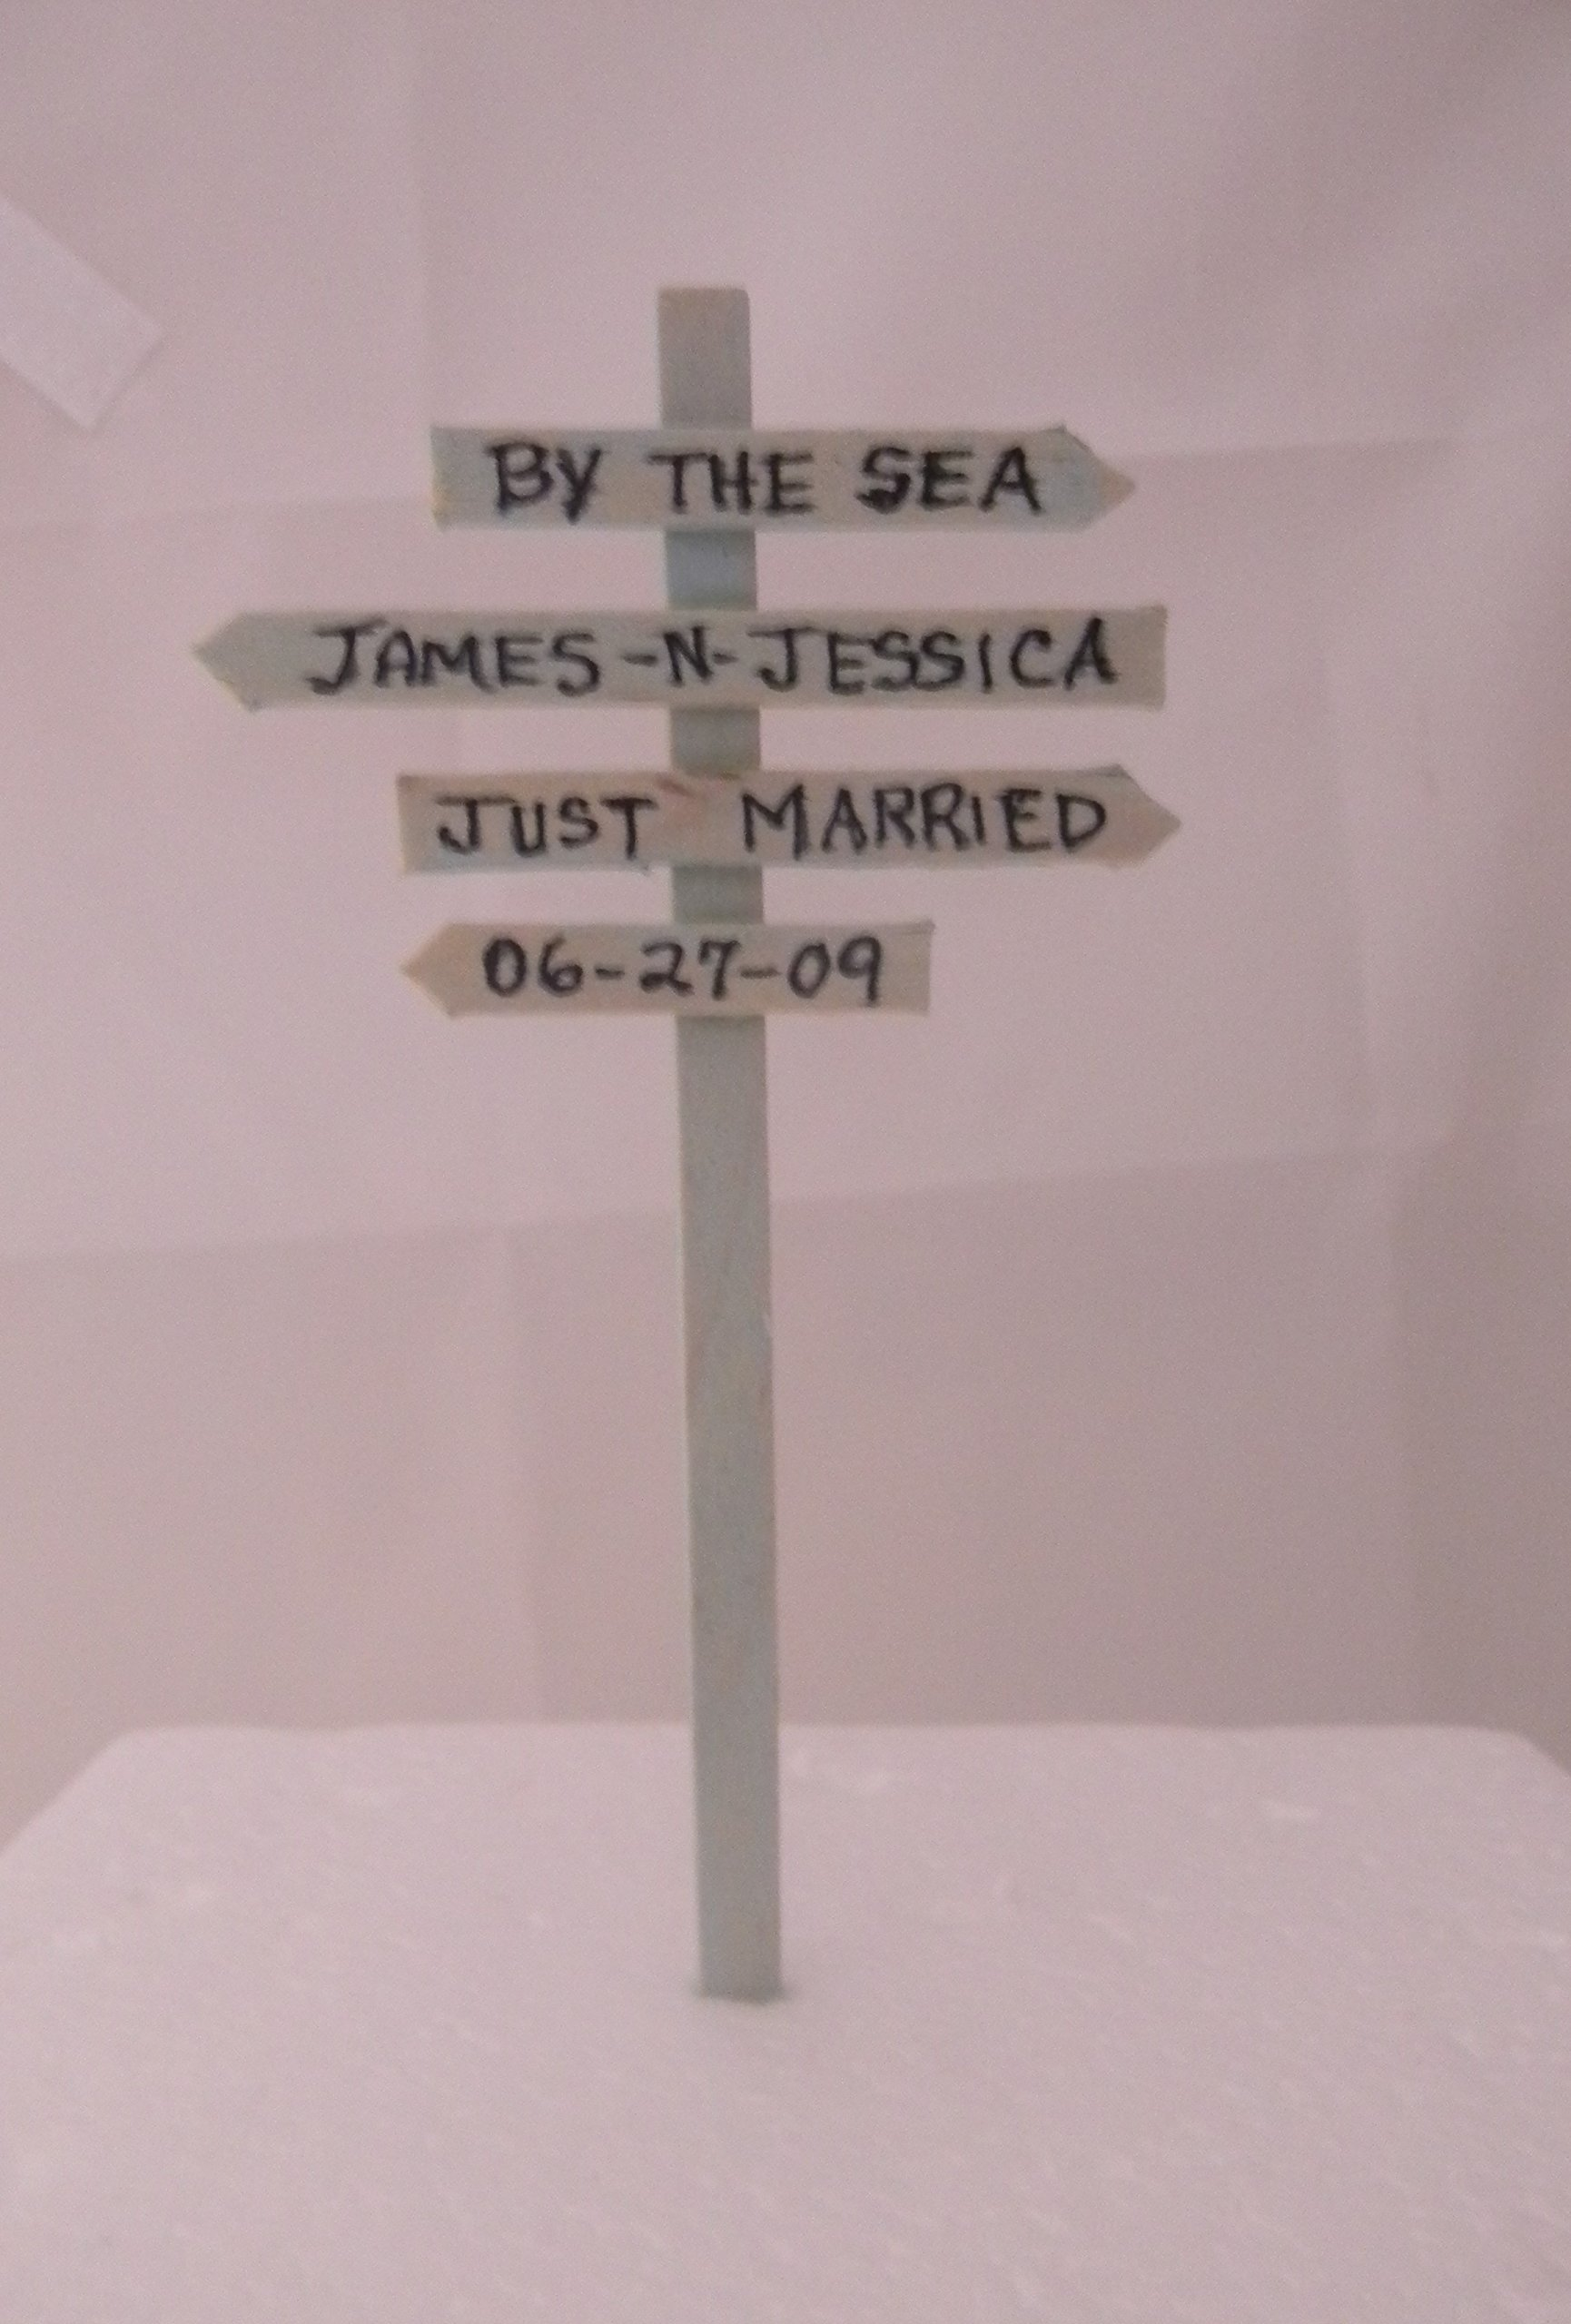 Wedding Reception Adirondack Chairs Beach Real Seahell Cake Topper Sign by Design by Suzanne (Image #2)